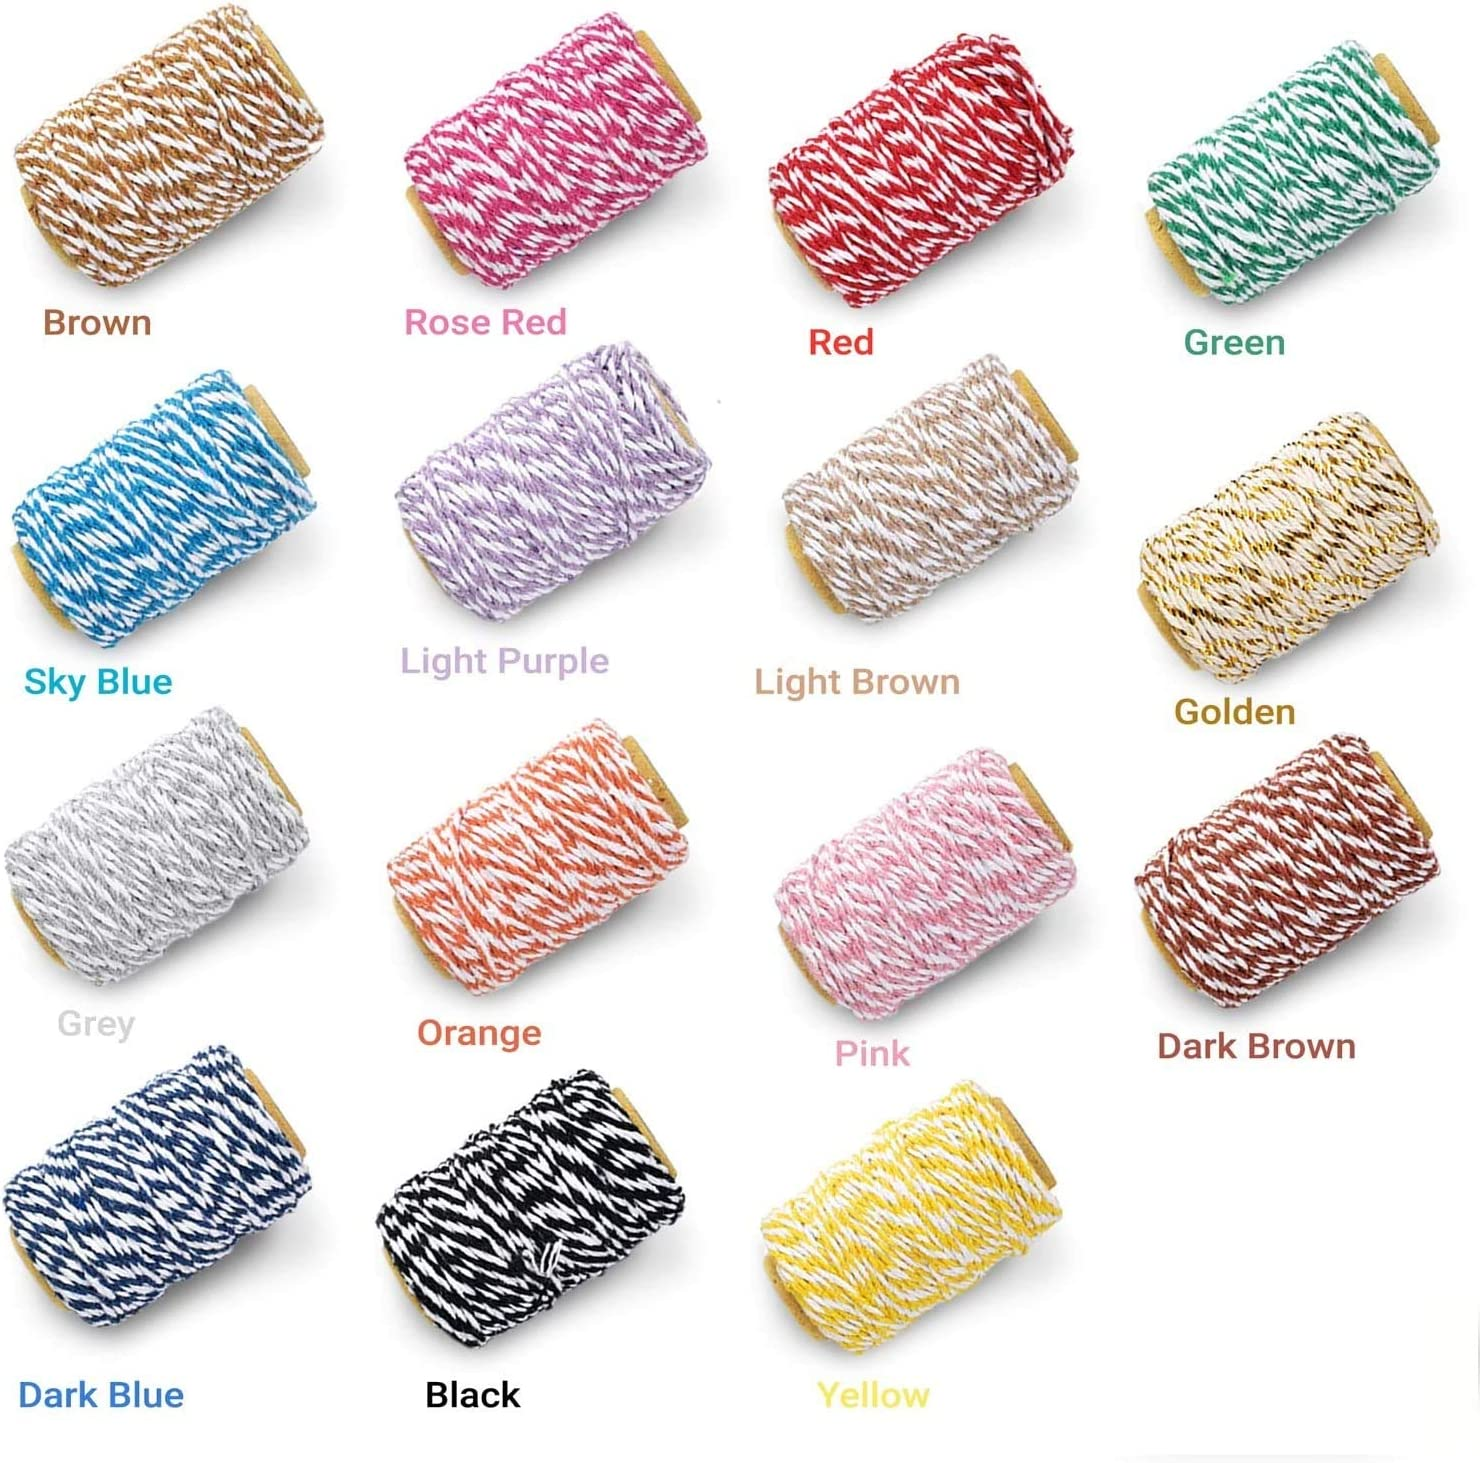 Gift Wrapping TEUN Bakers Twine Picture Display and Embellishments 15 Rolls Cotton Colourful Twine String for Artworks 82 feet// 25 Meters DIY Crafts